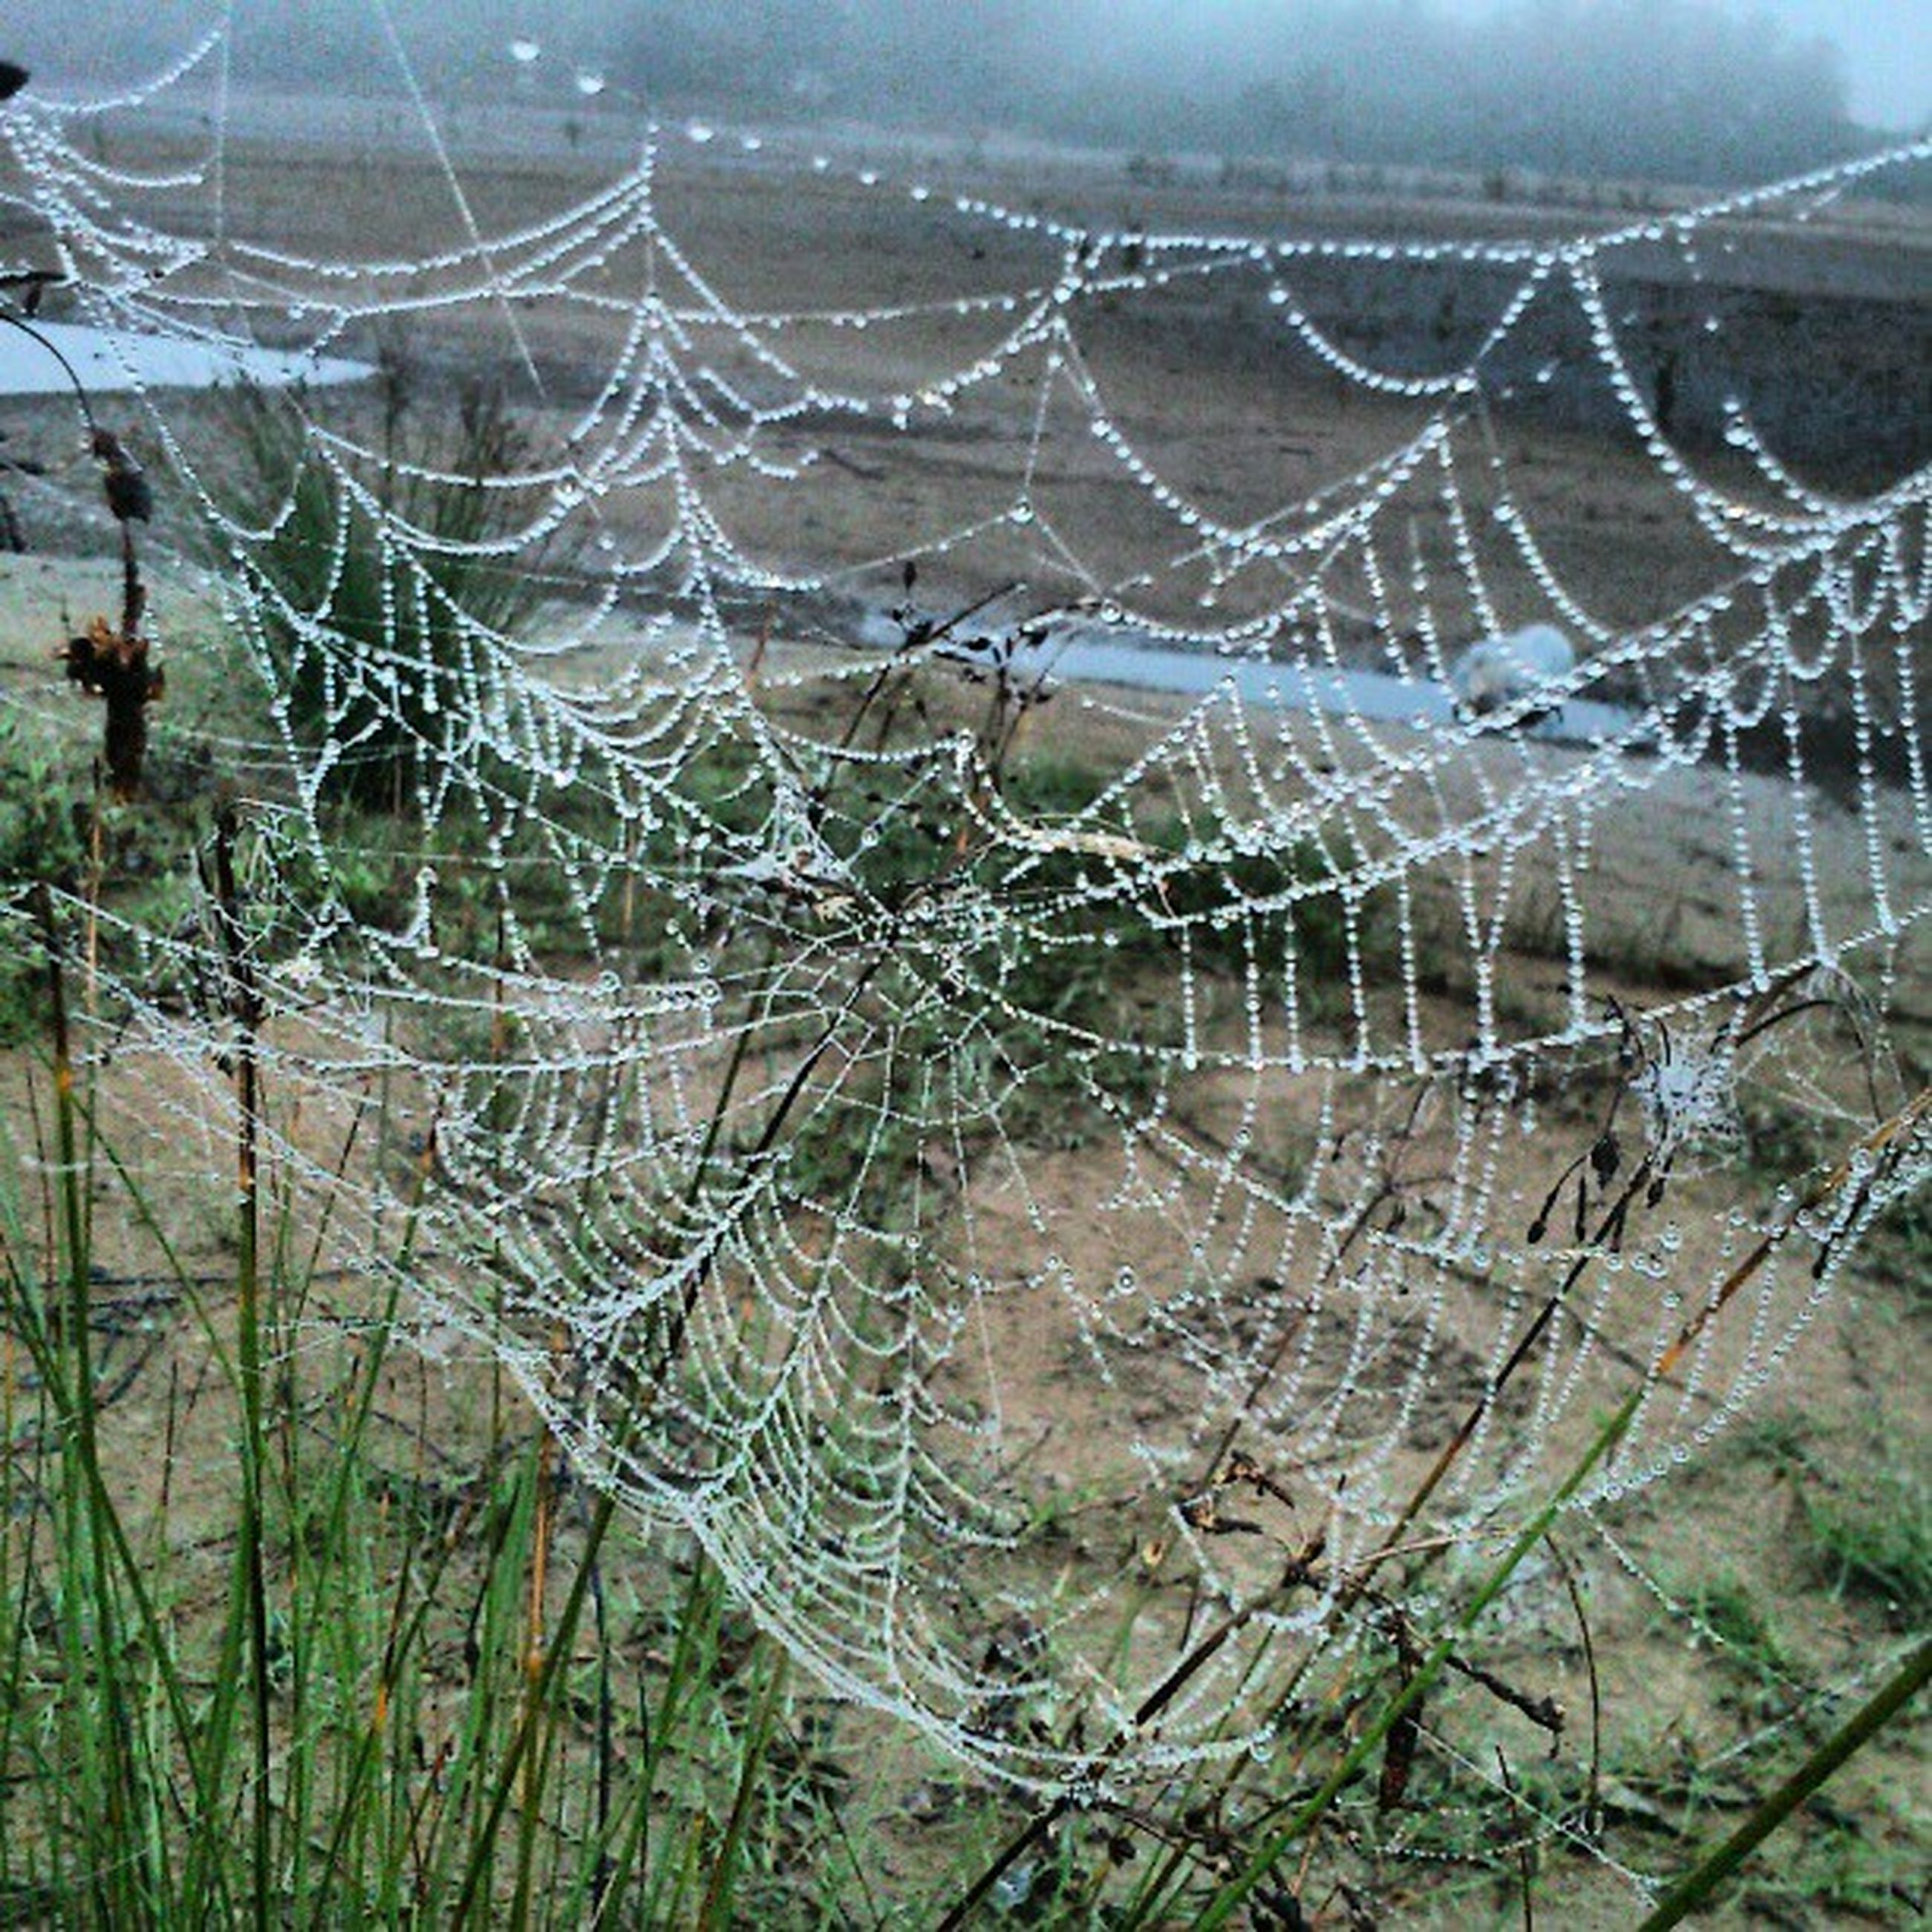 natural pattern, nature, tranquility, water, spider web, pattern, beauty in nature, landscape, close-up, day, outdoors, backgrounds, full frame, no people, high angle view, tranquil scene, scenics, focus on foreground, plant, non-urban scene